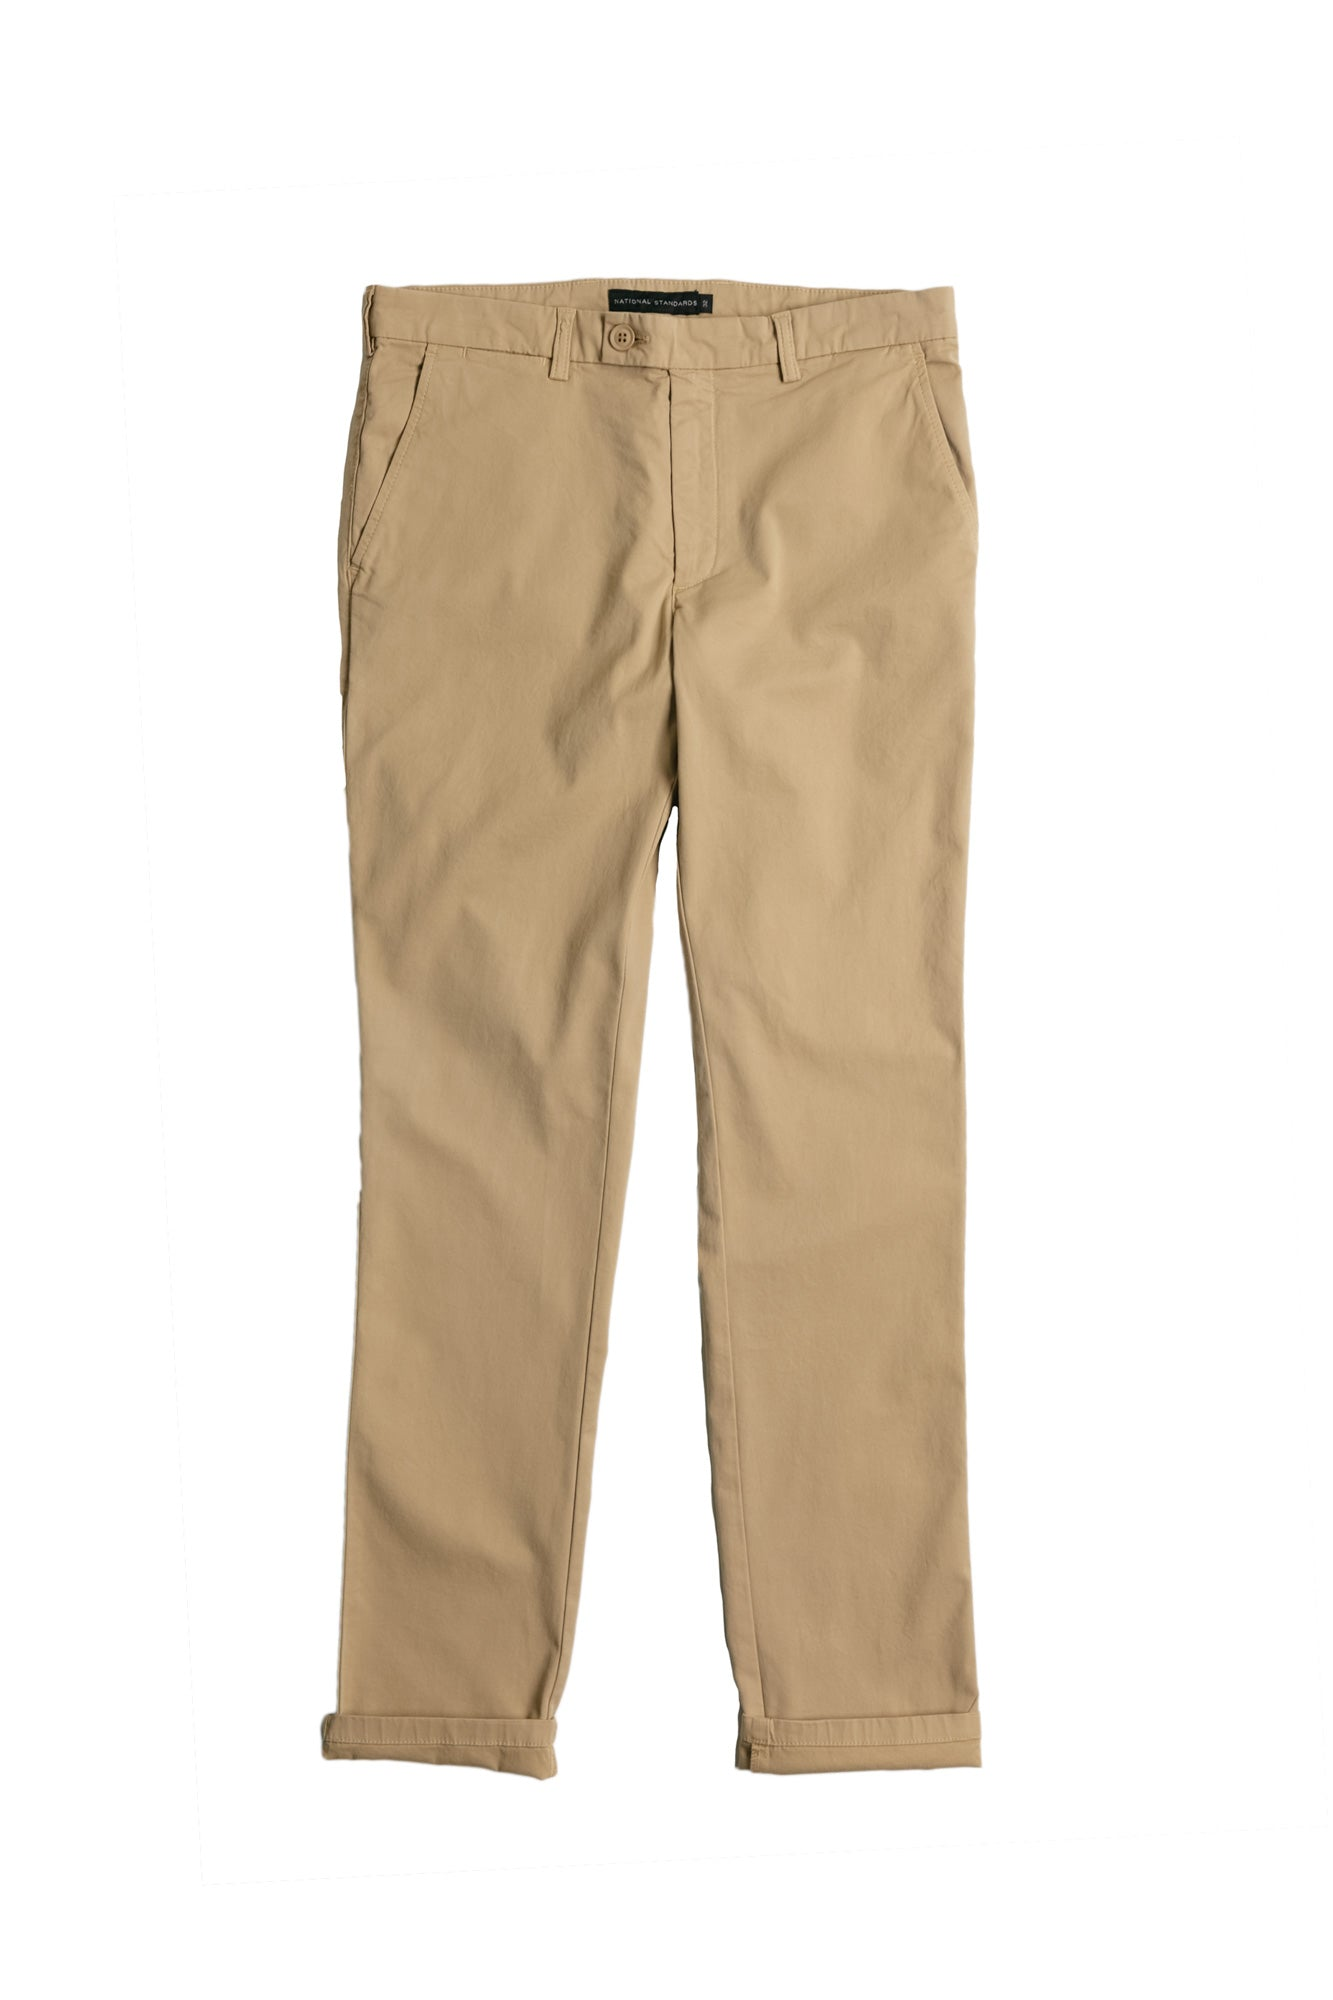 Stretch Chino in Khaki Front